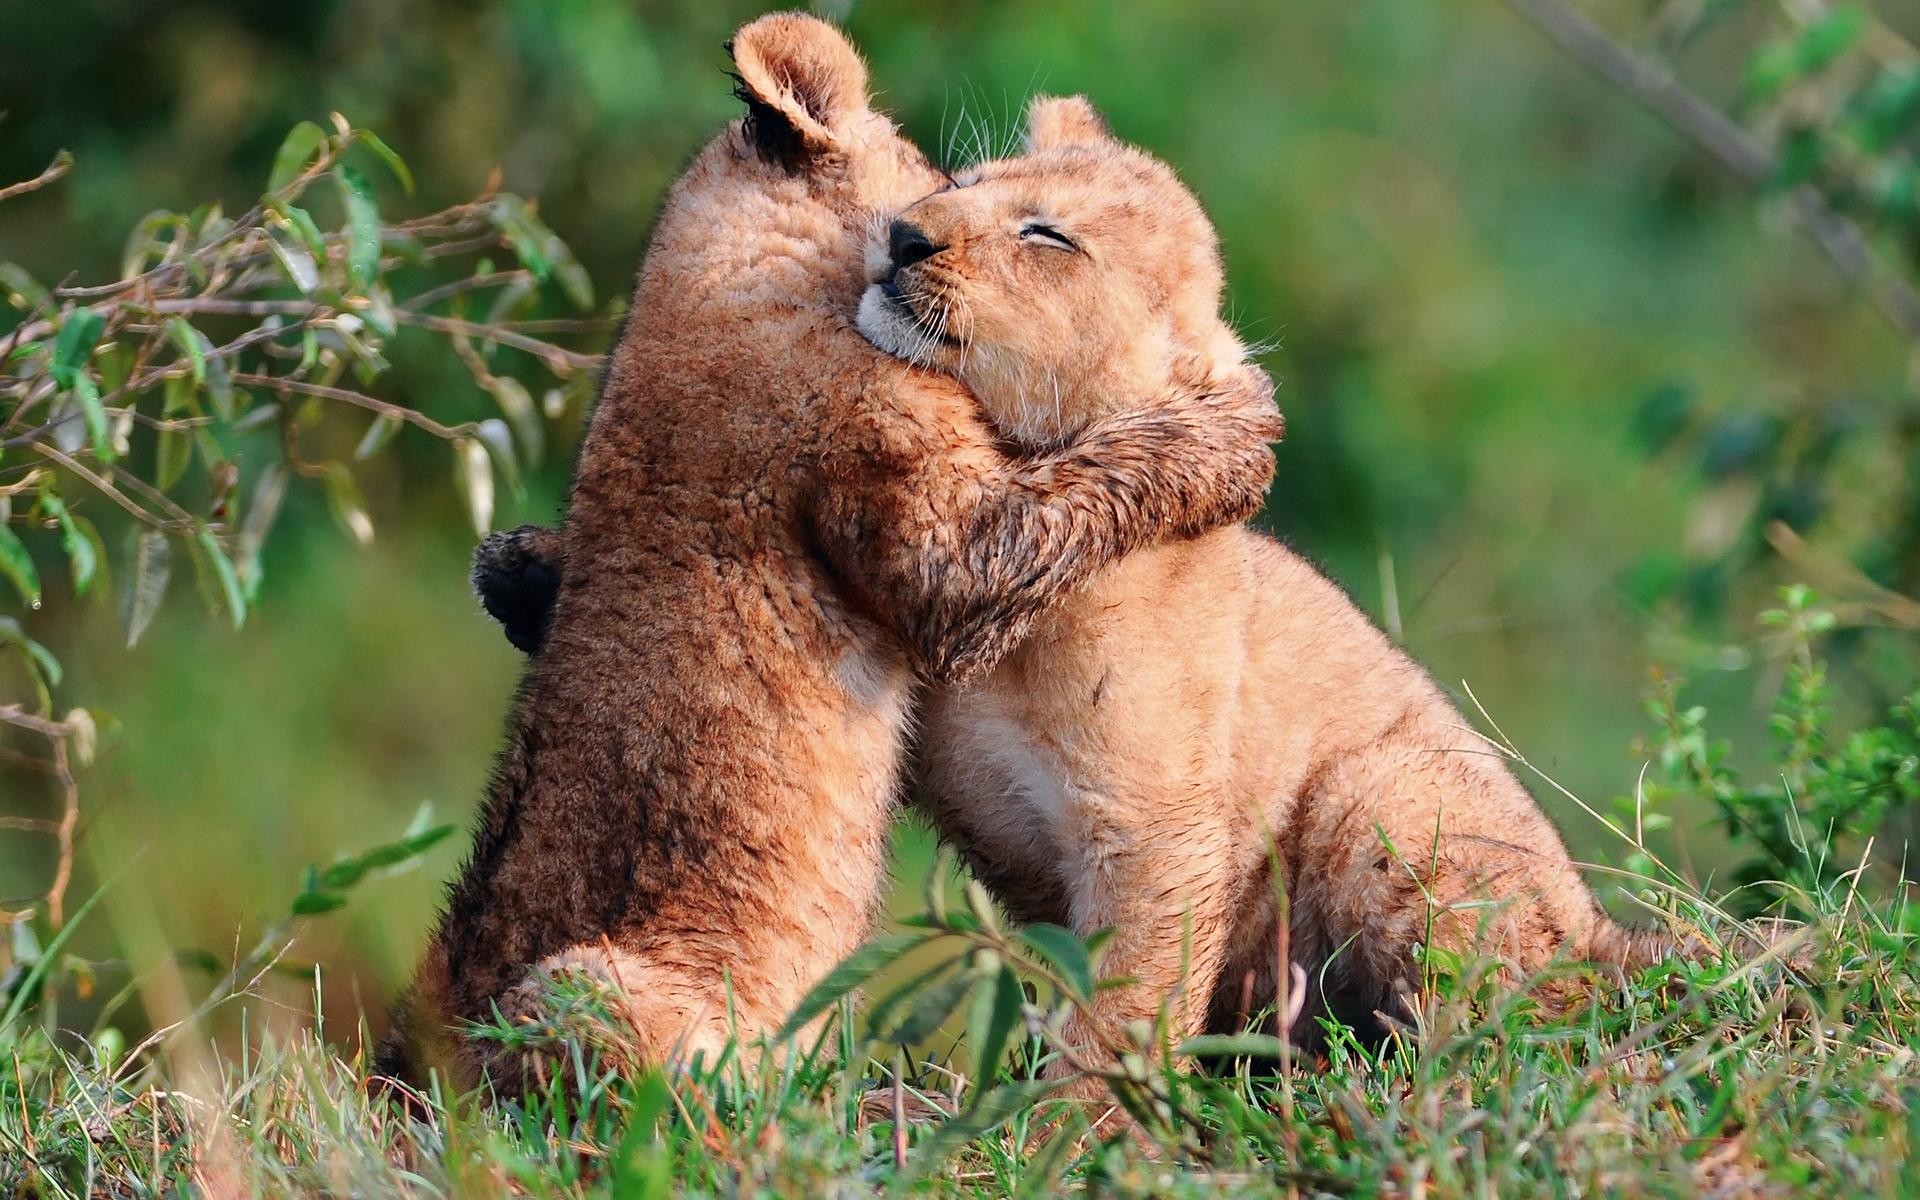 Animals Hd Wallpapers 2015 Funny Kissing Hugging Baby